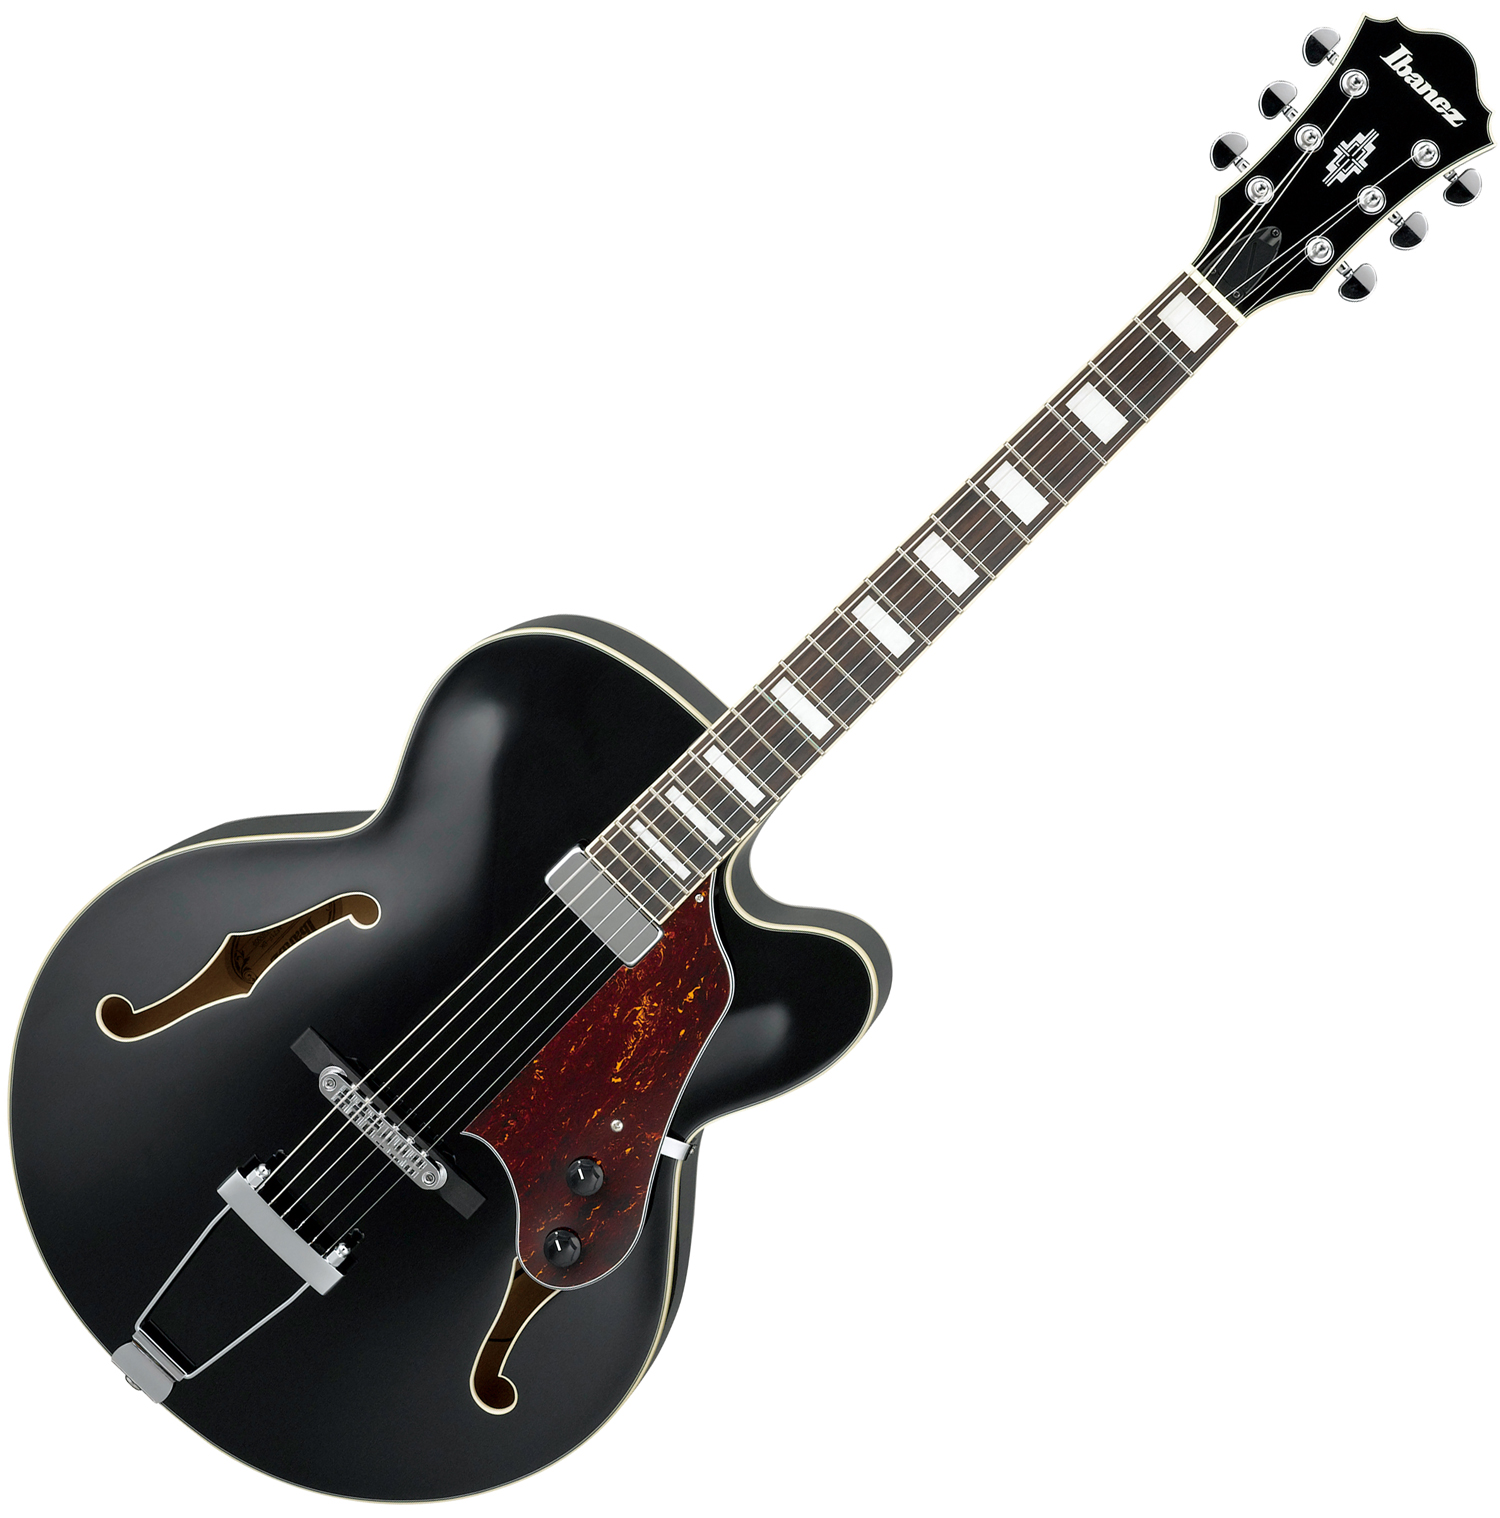 hollow body guitars hollow body guitars ibanez artcore electric hollow body black. Black Bedroom Furniture Sets. Home Design Ideas